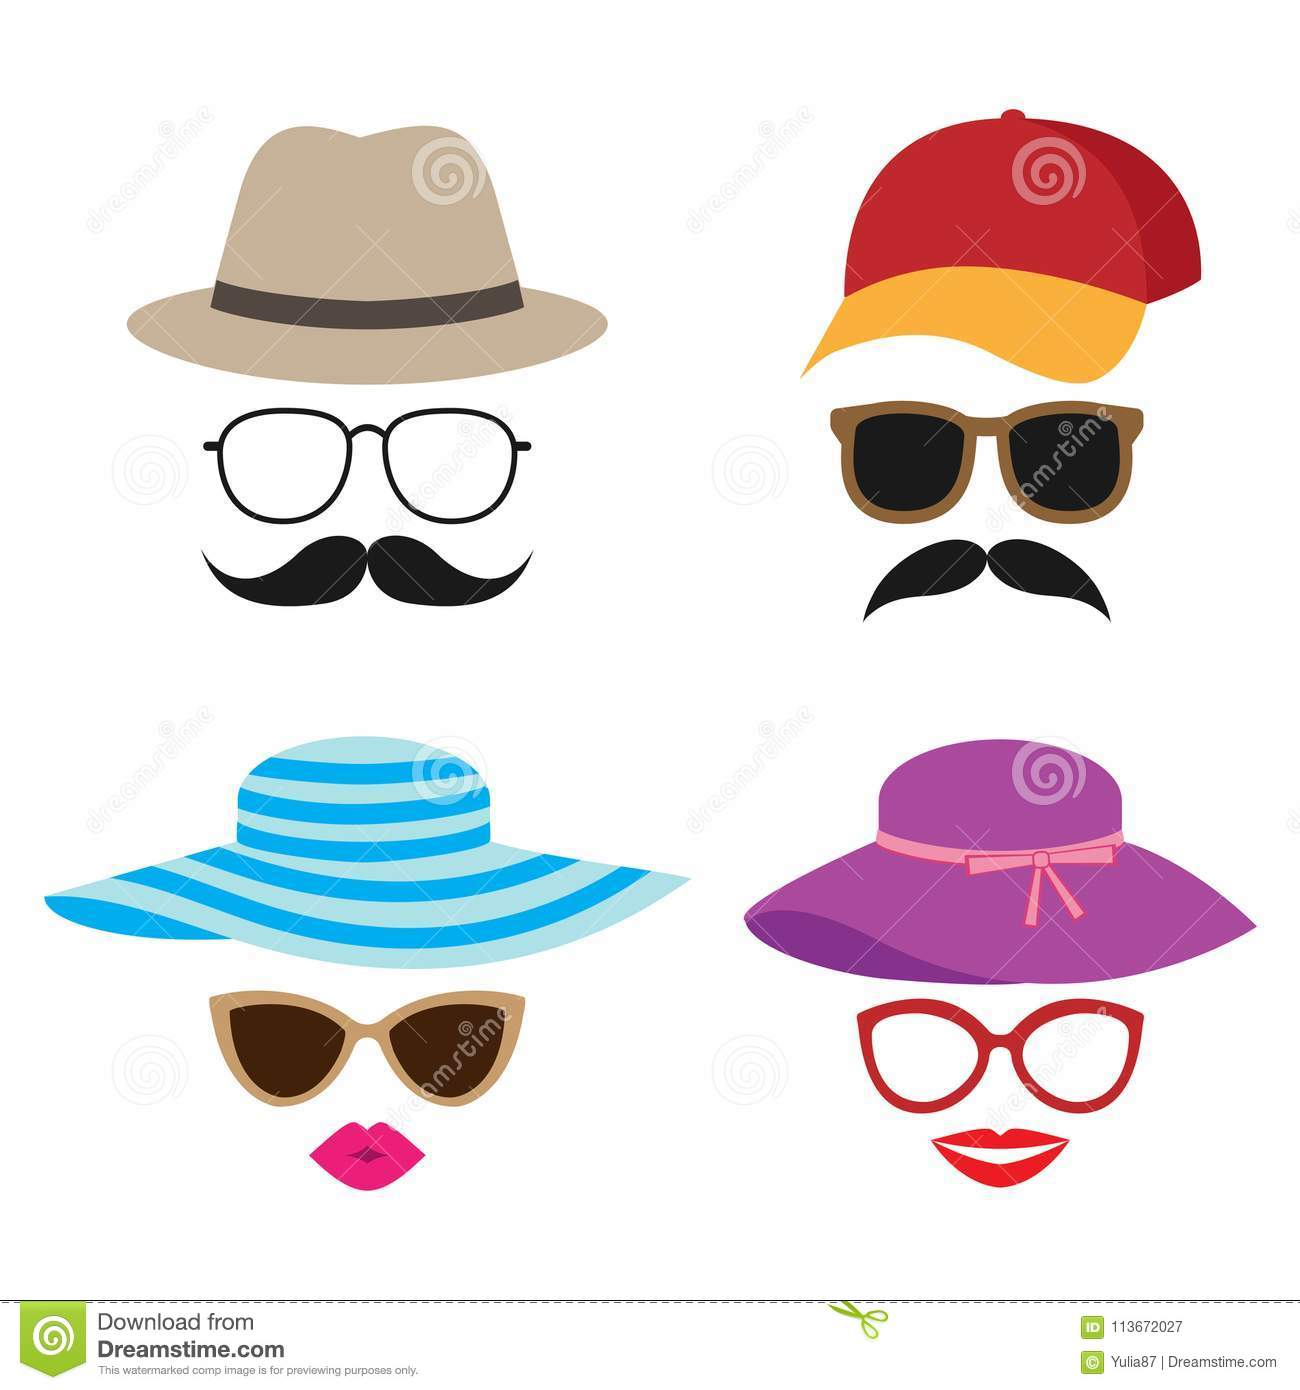 c9272c0ac0d Summer Photo Booth Vector Props Stock Vector - Illustration of ...